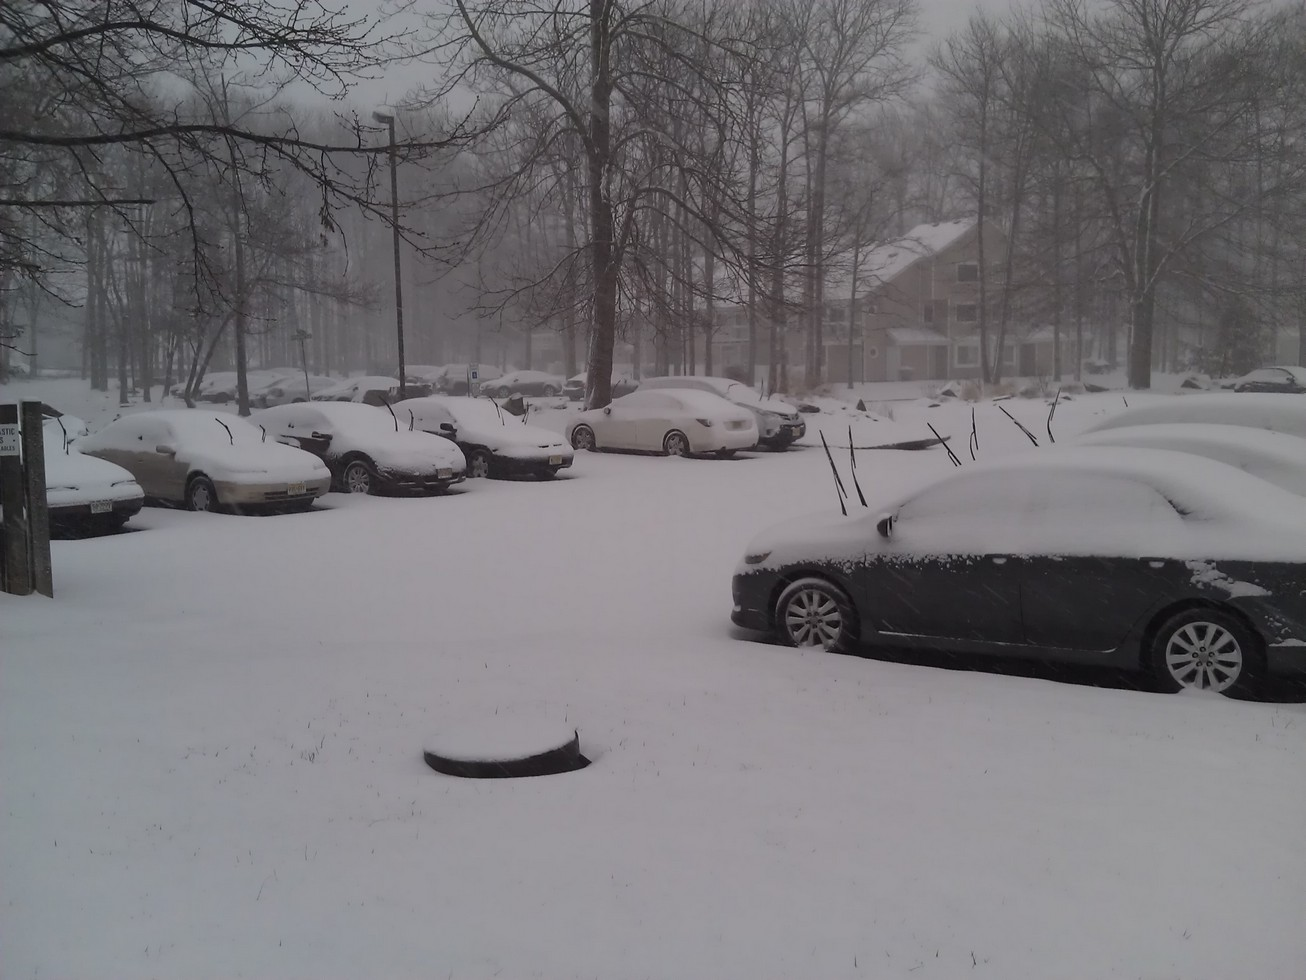 Cars surrender to the snow